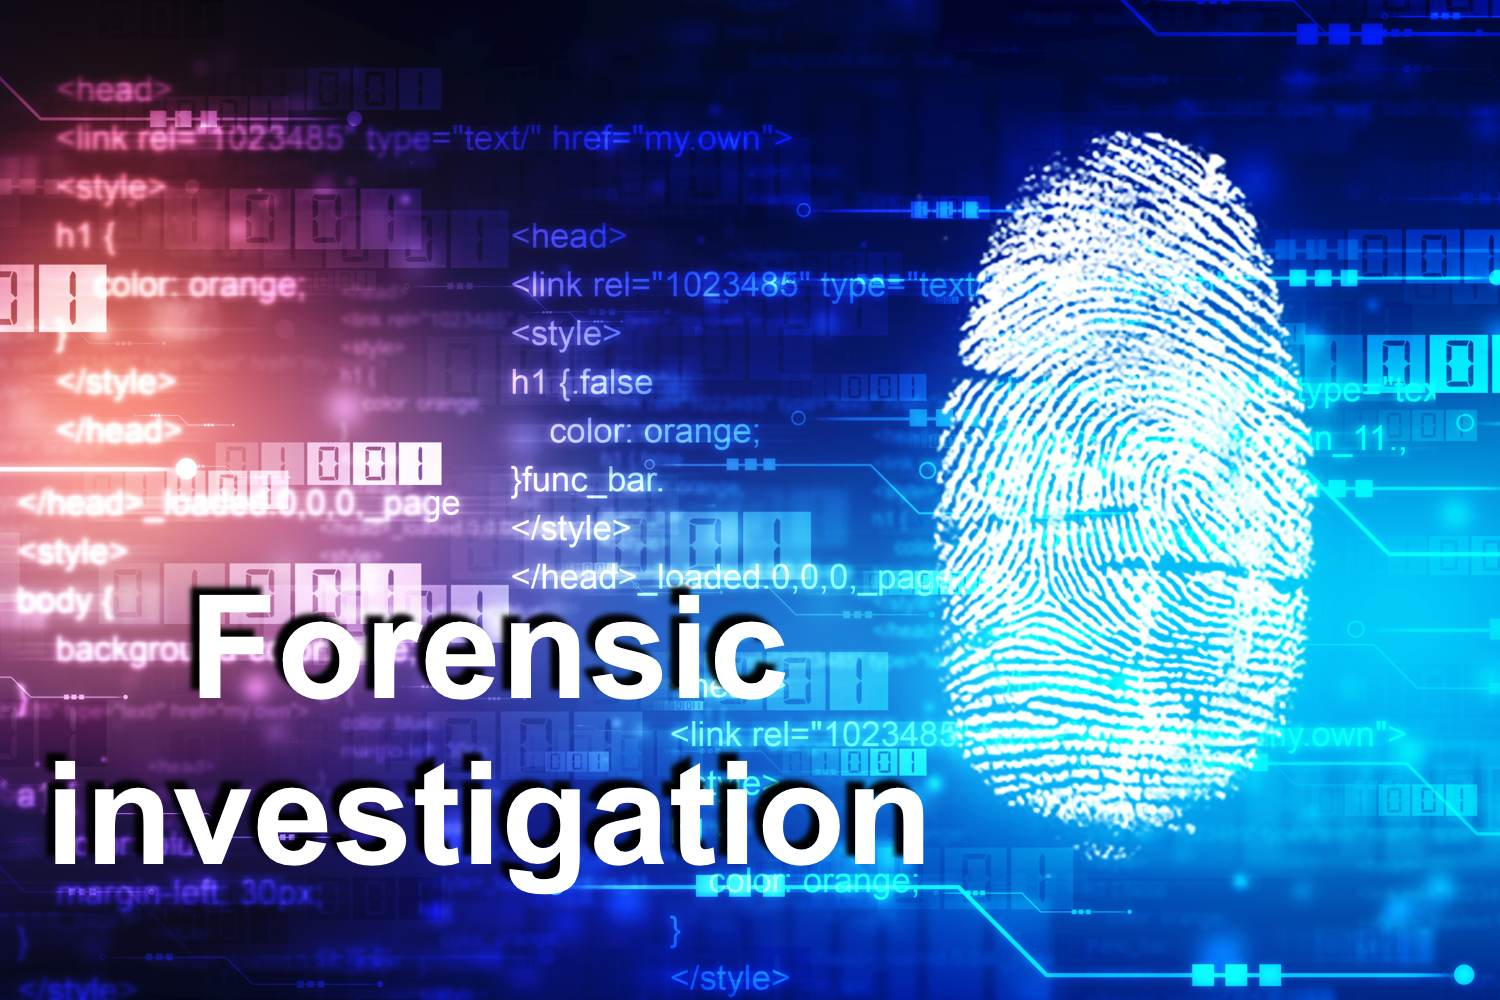 Forensic investigations - a holistic approach